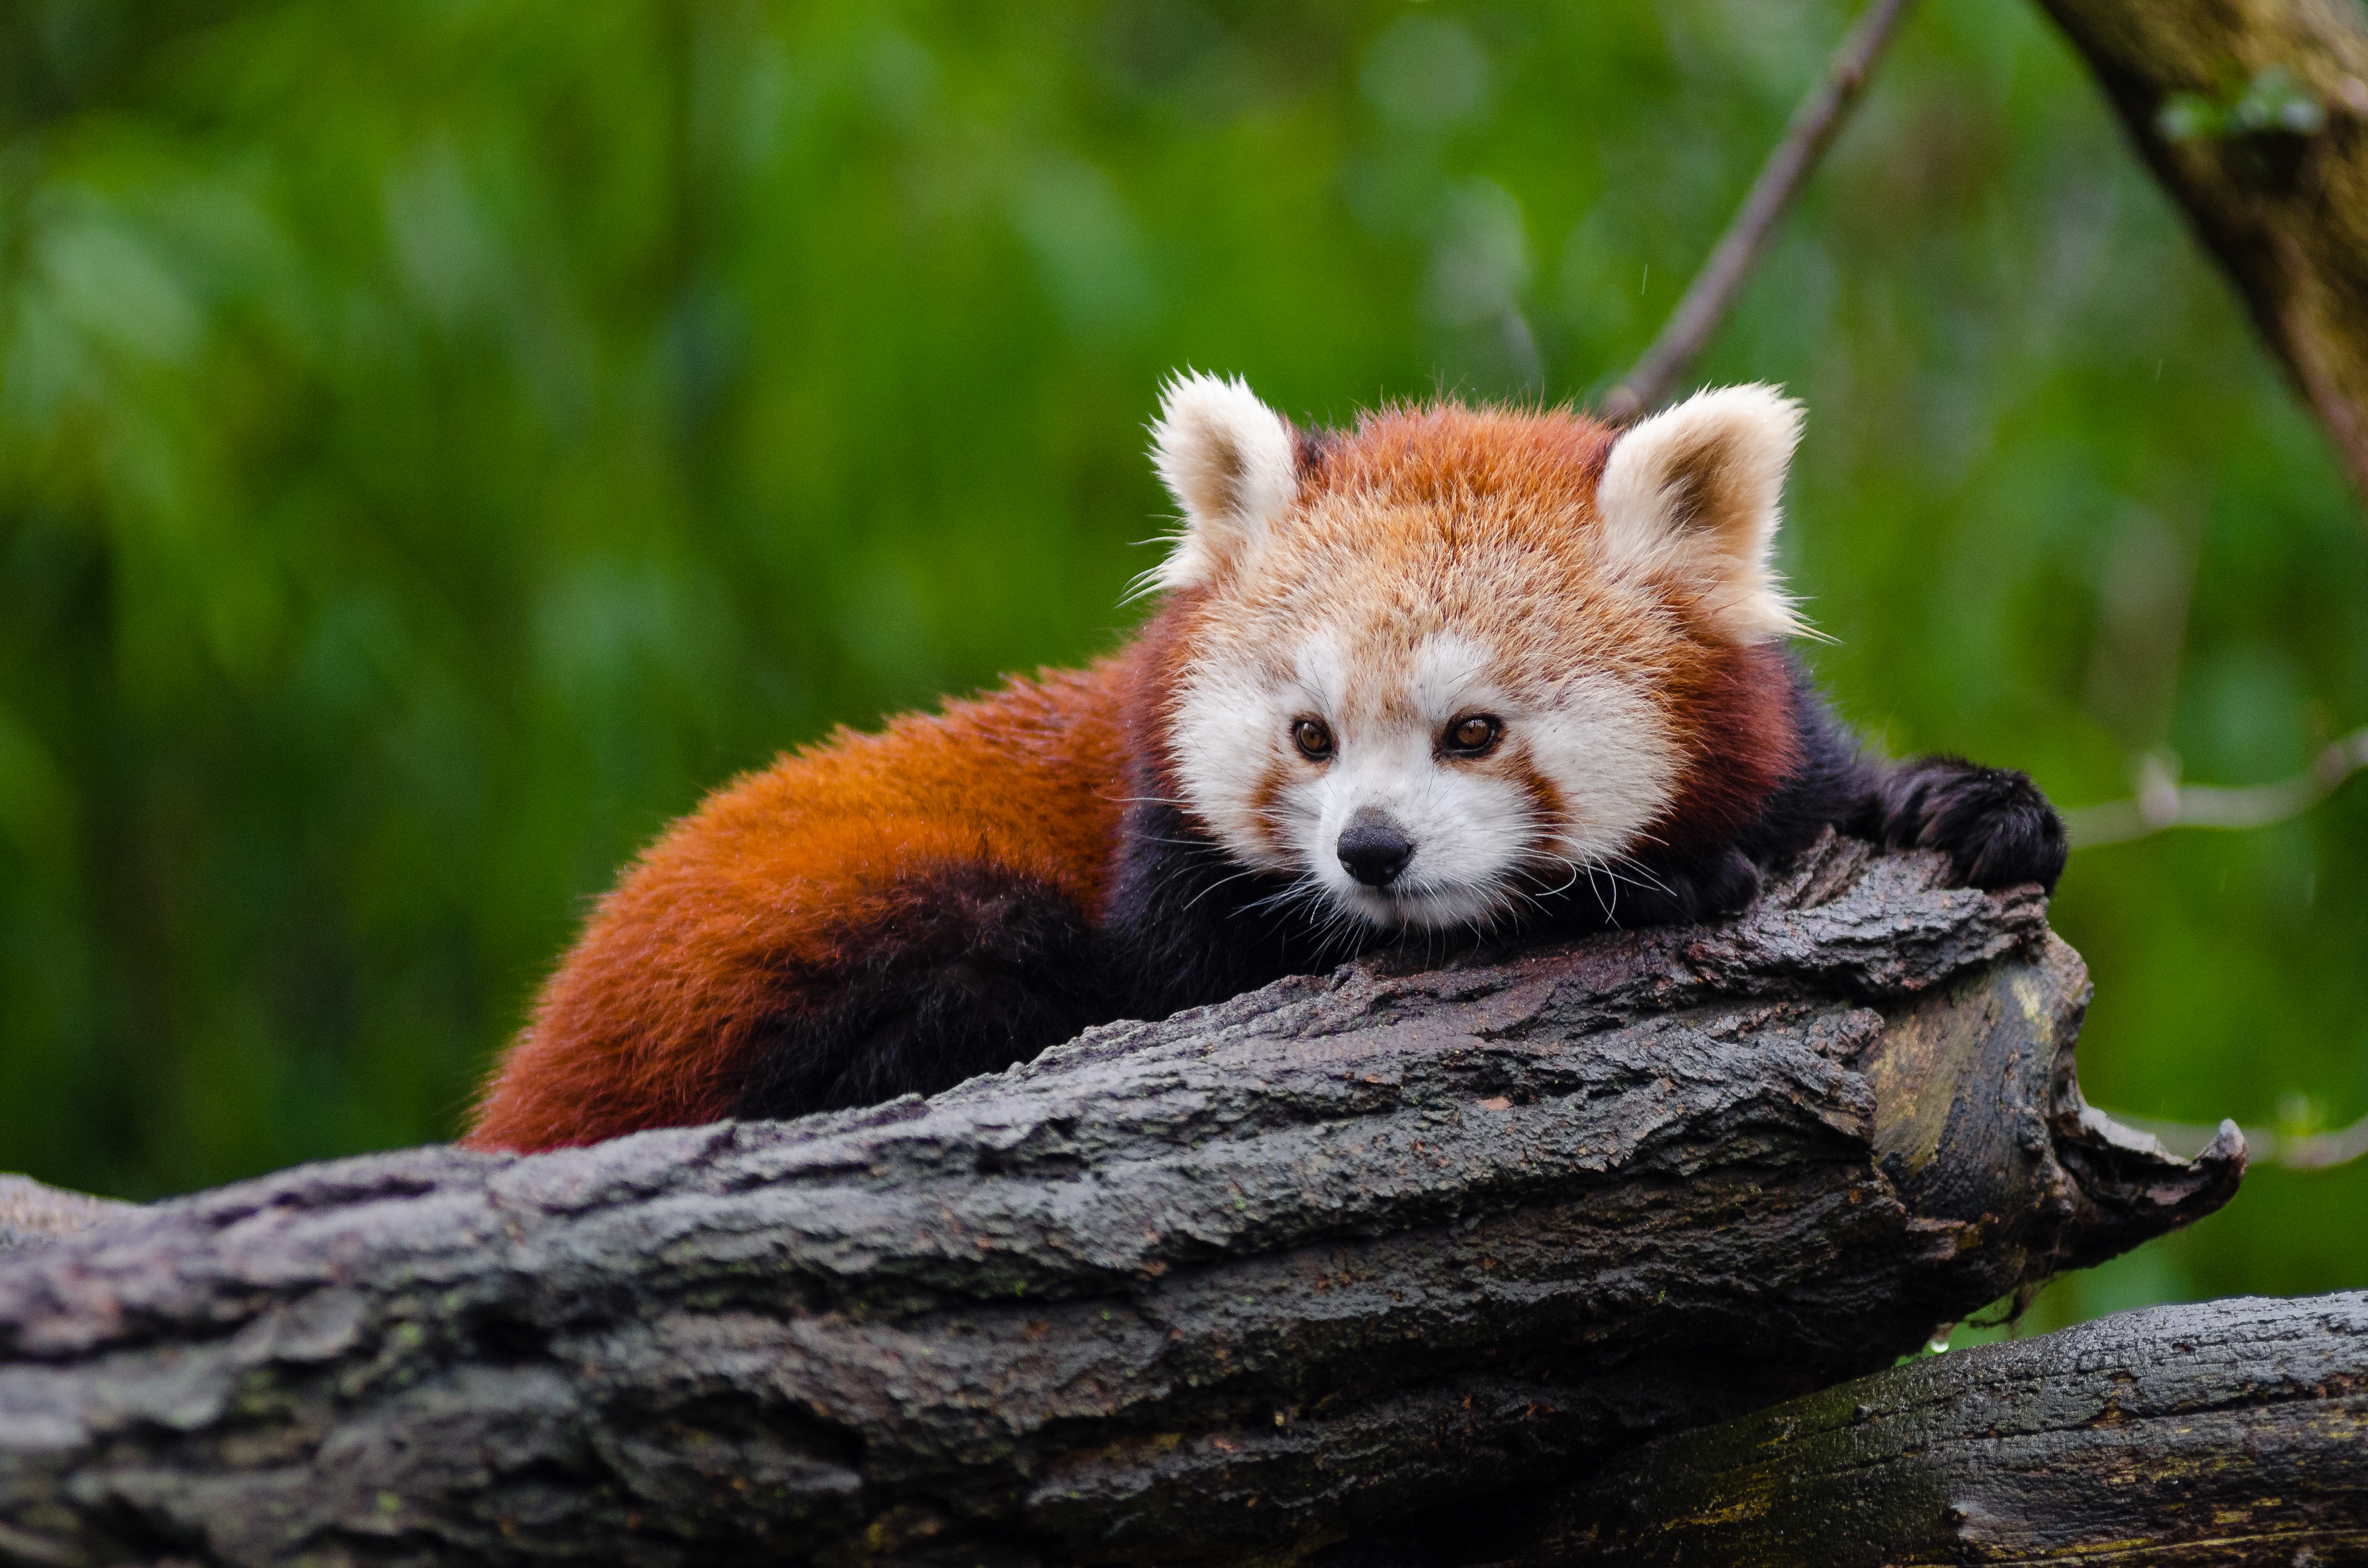 Black Wood Wallpaper Red Pandas 183 Free Stock Photo